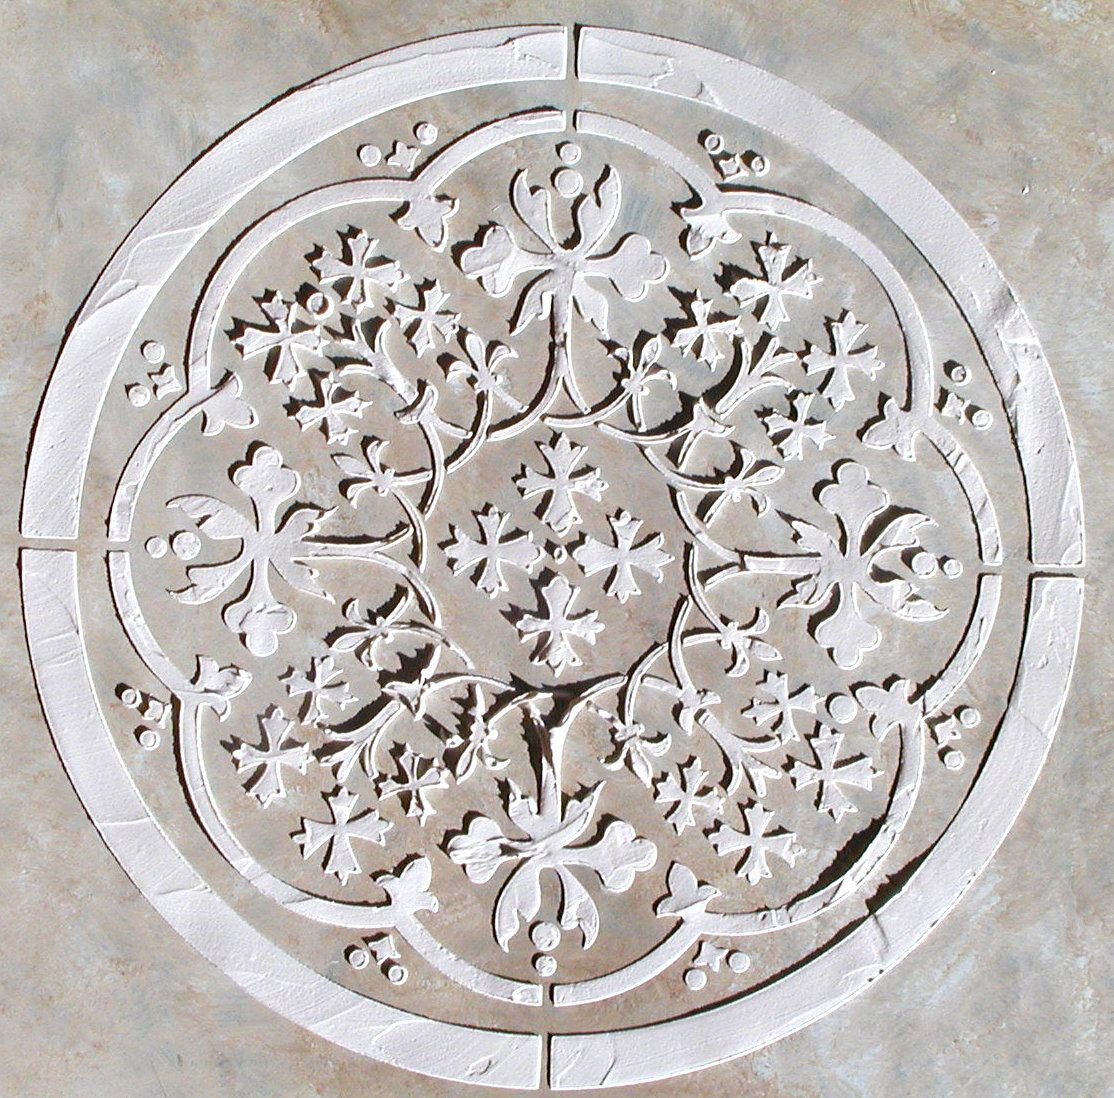 Raised plaster moroccan medallion stencil wall stencil painting raised plaster moroccan medallion stencil wall stencil painting stencil craft stencil 4299 amipublicfo Image collections